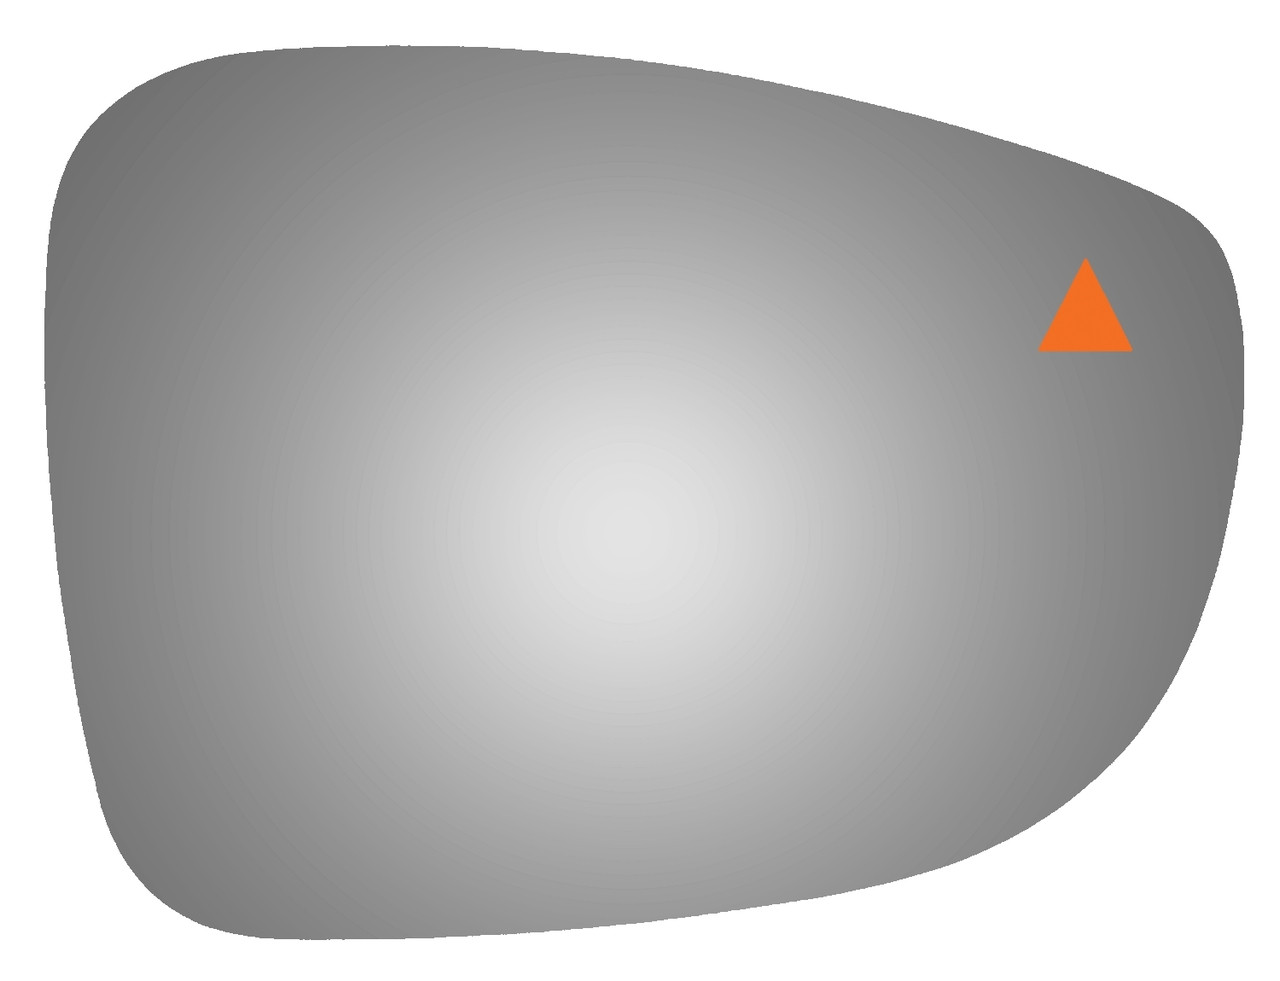 CHEVROLET PONTIAC Models GMC Driver or Passenger Side Replacement Mirror Glass for multiple BUICK OLDSMOBILE